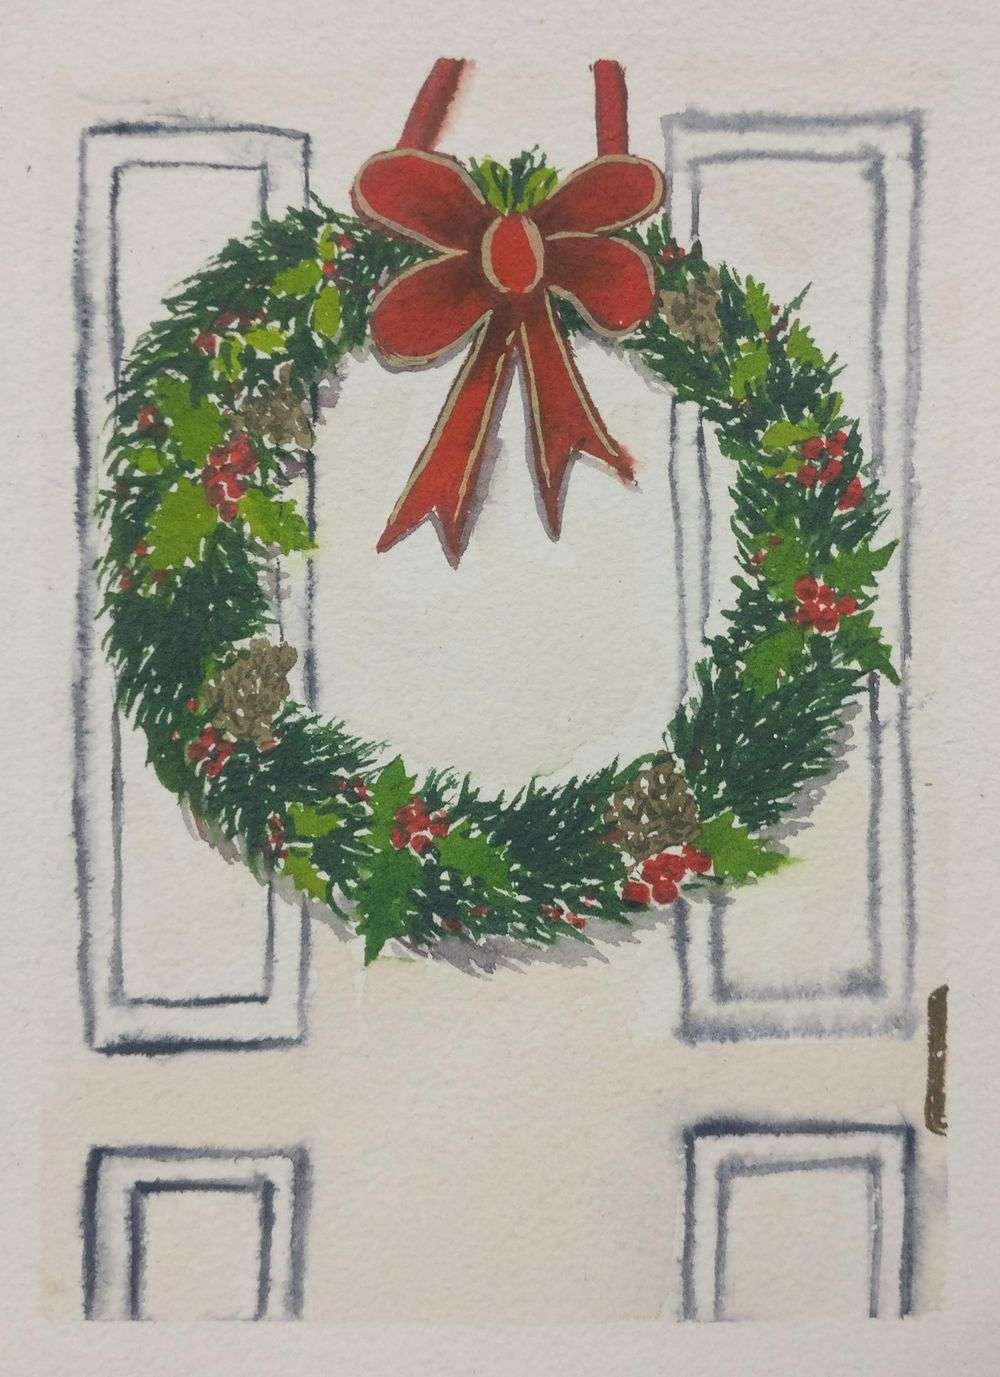 Christmas with watercolors - image 14 - student project